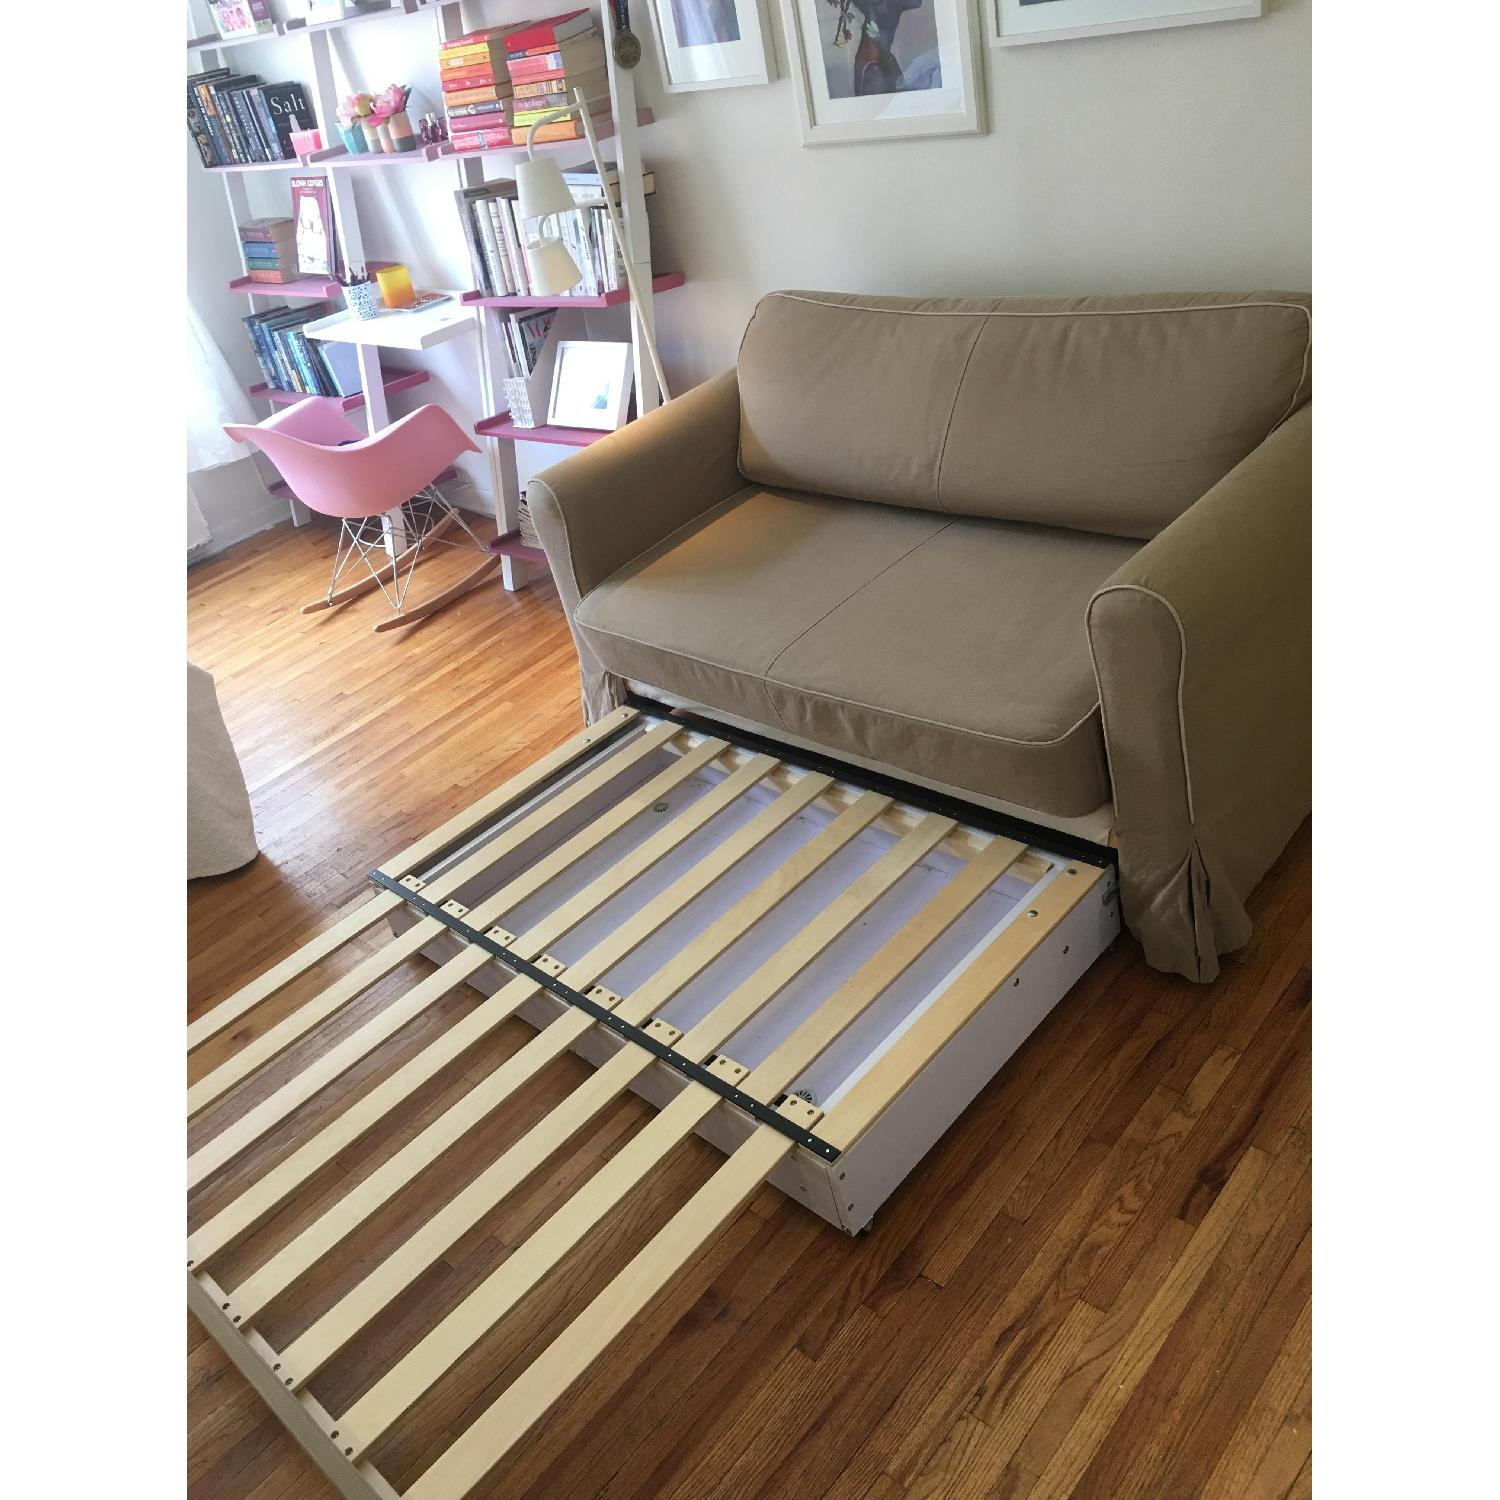 West Elm Beige Fold-Out Couch - image-4